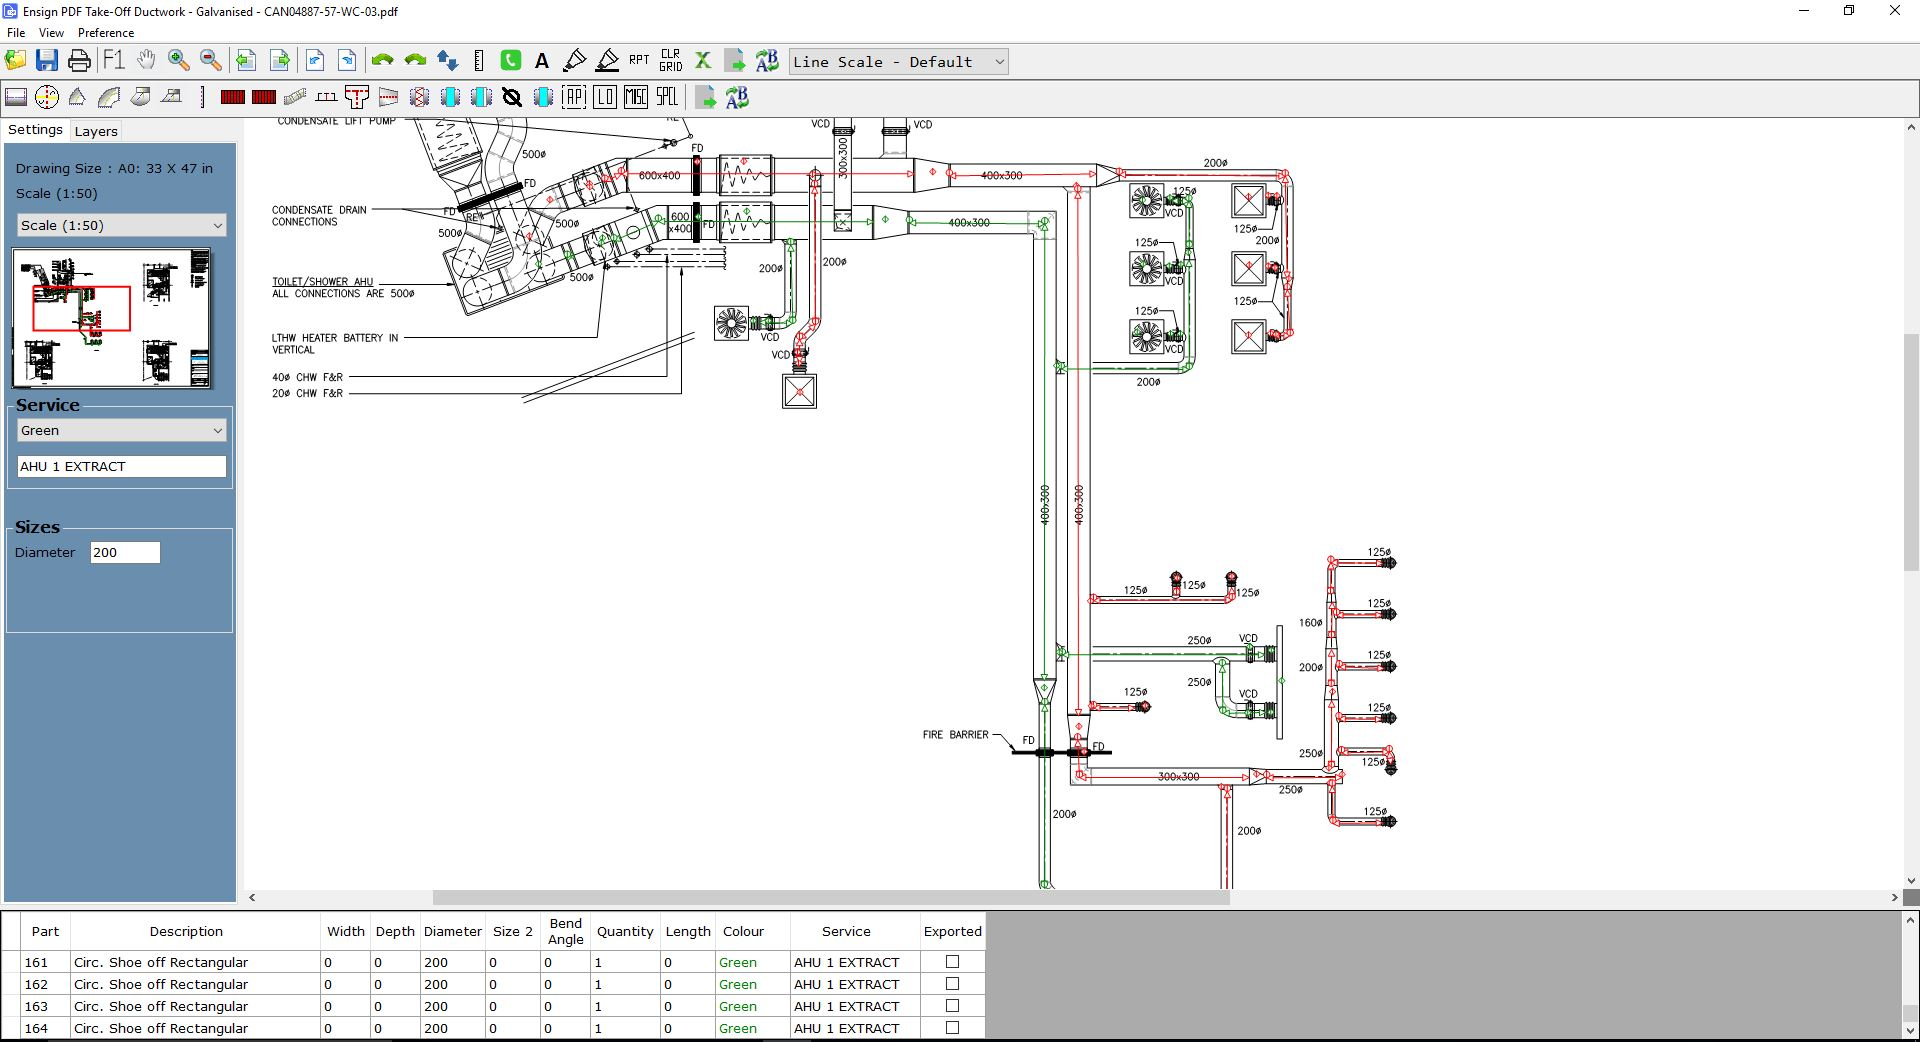 Hvac Drawing Key Excellent Electrical Wiring Diagram House Symbols Dwg Library Rh 17 Budoshop4you De Drawings Software